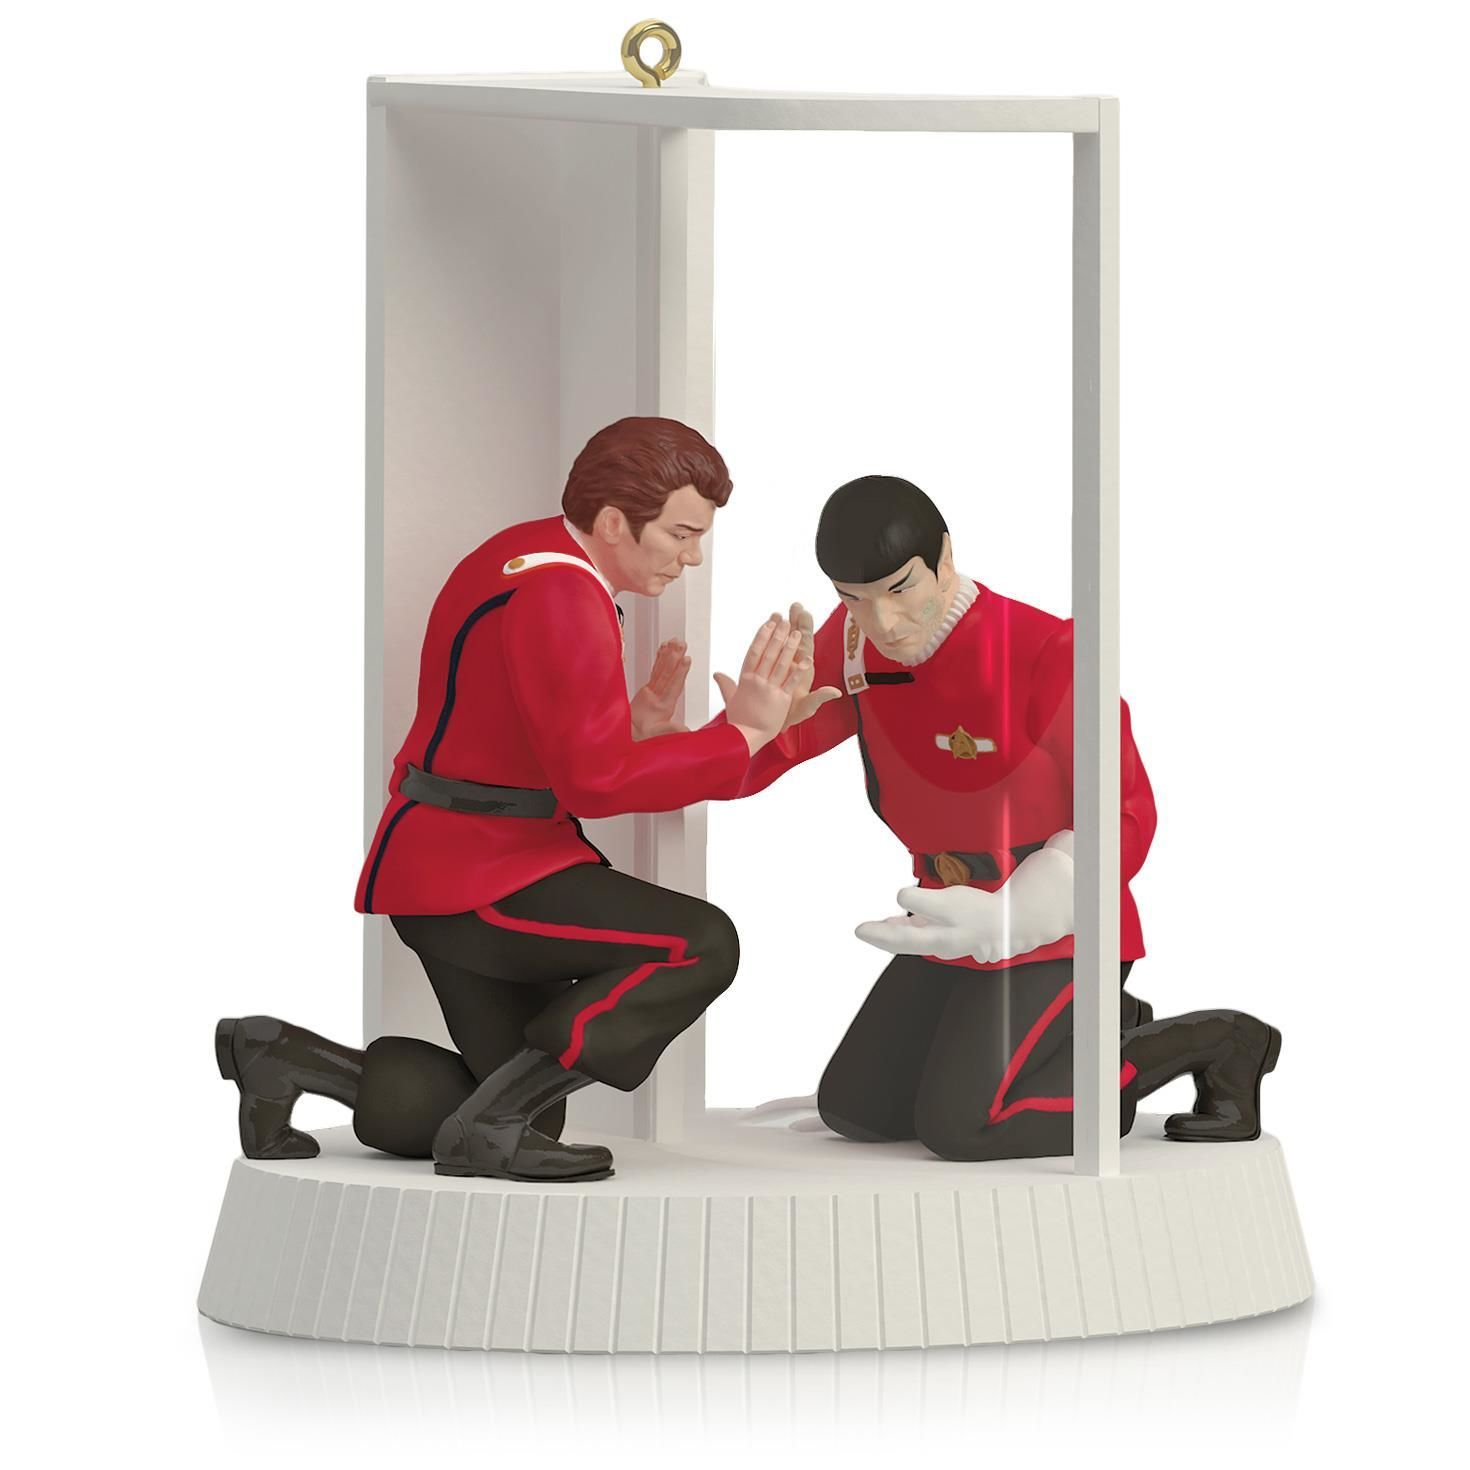 Yearly christmas ornaments - 2015 Hallmark Ornament Star Trek The Needs Of Many Hallmark Keepsake Christmas Ornaments